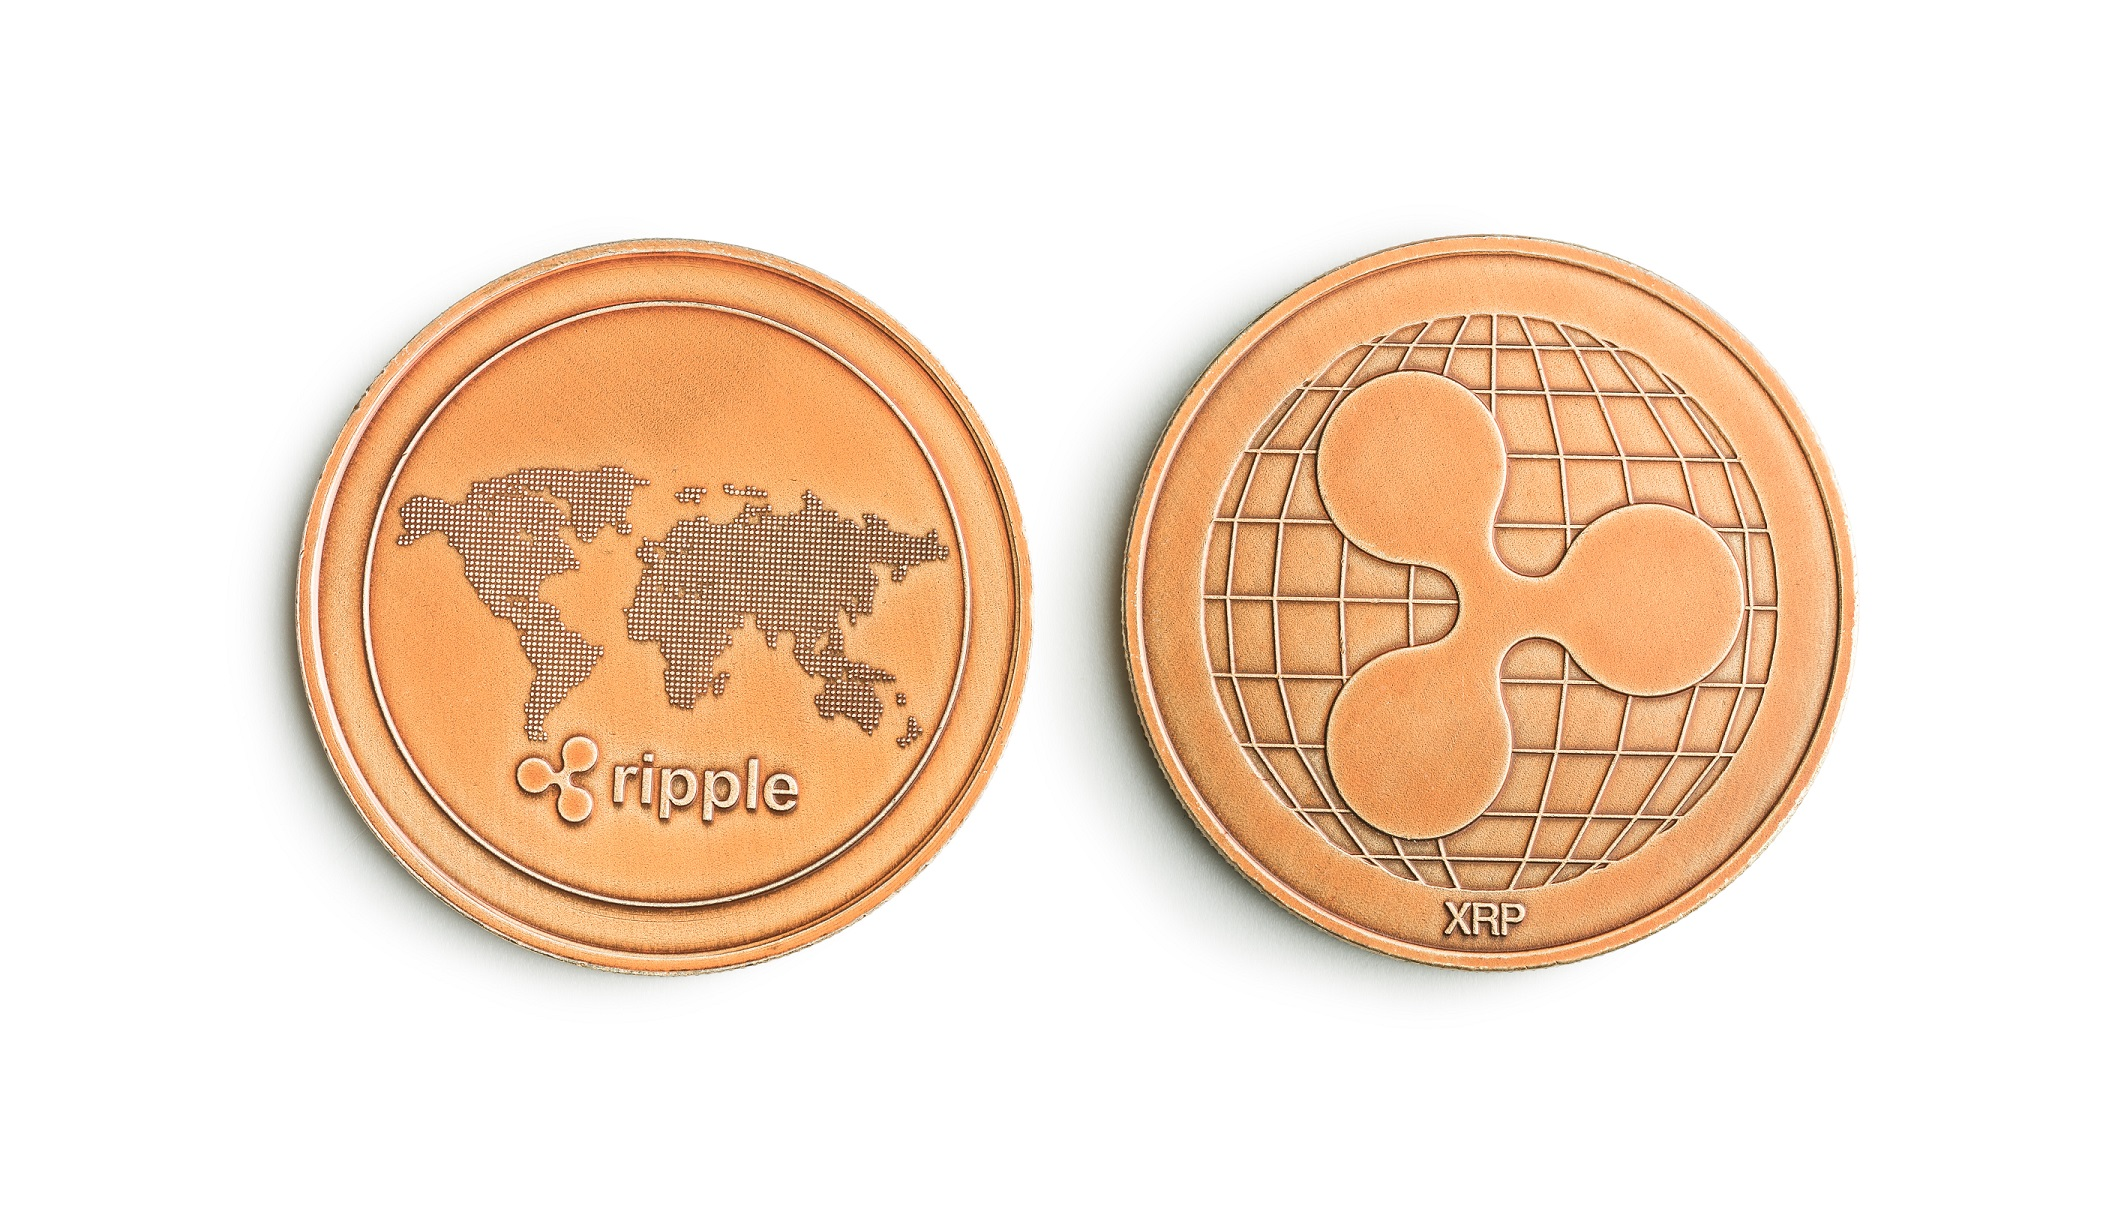 Everything You Need To Know About Ripple (XRP)